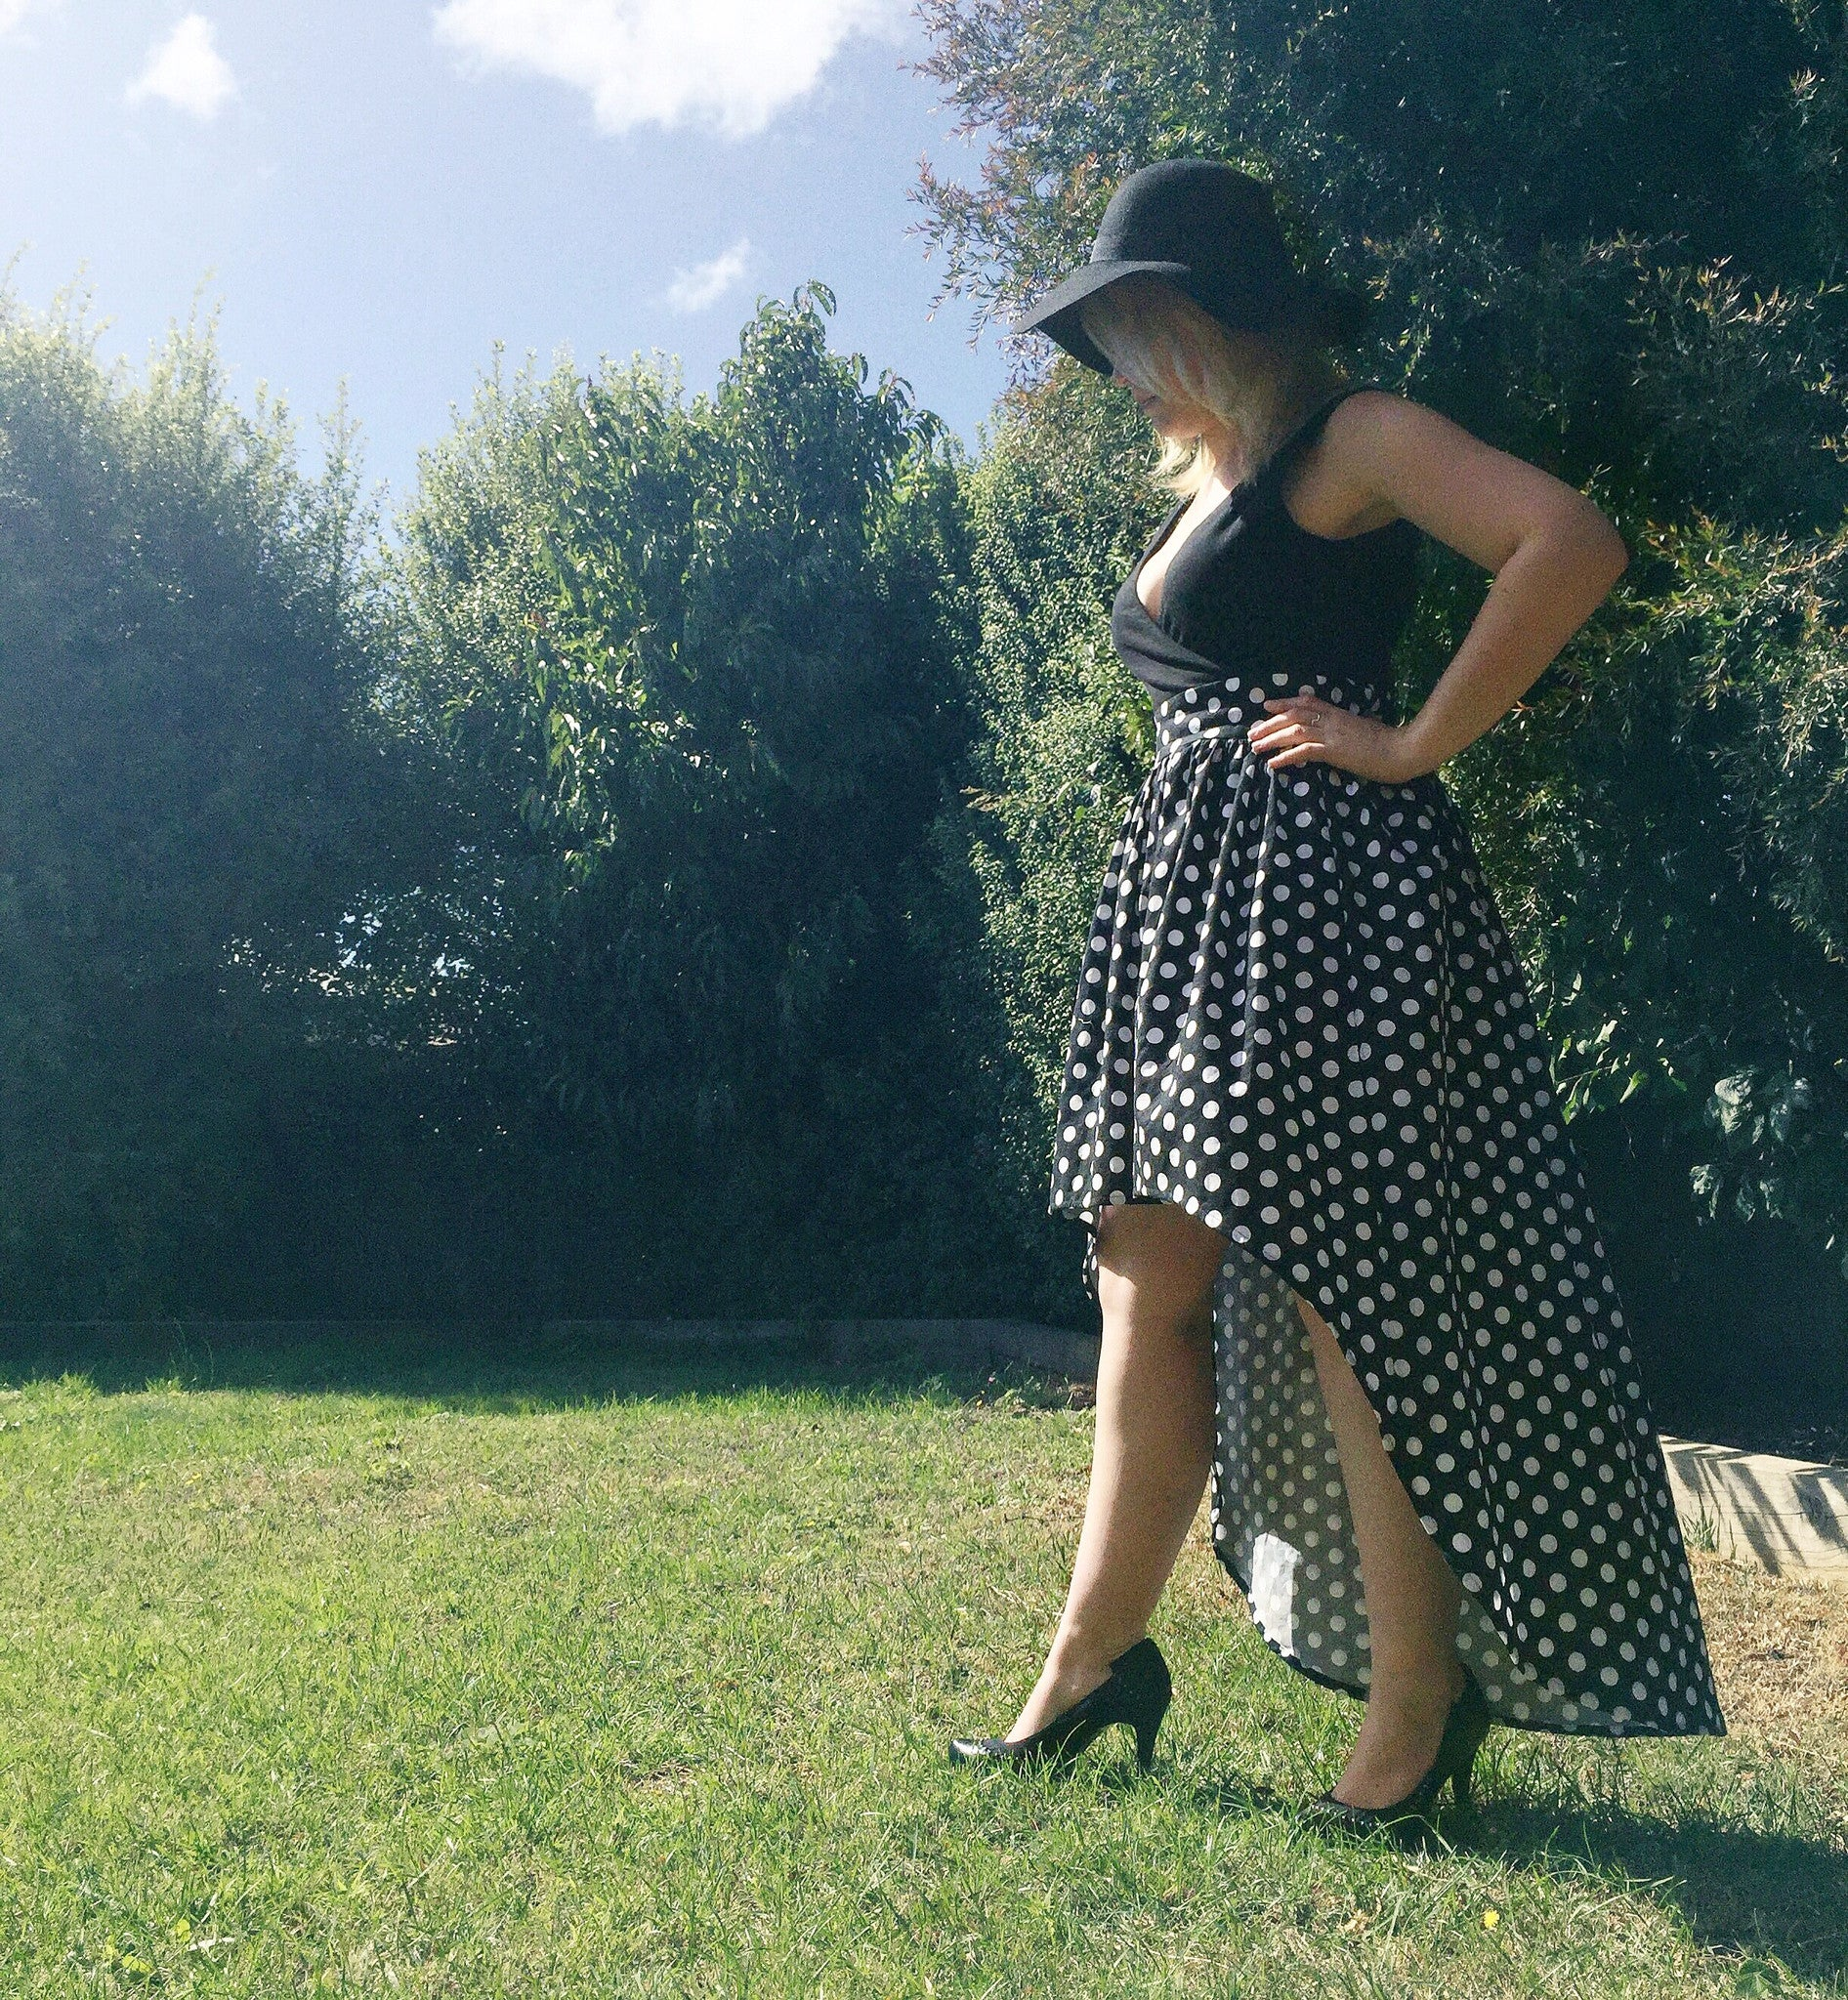 Monochrome Mumma dress